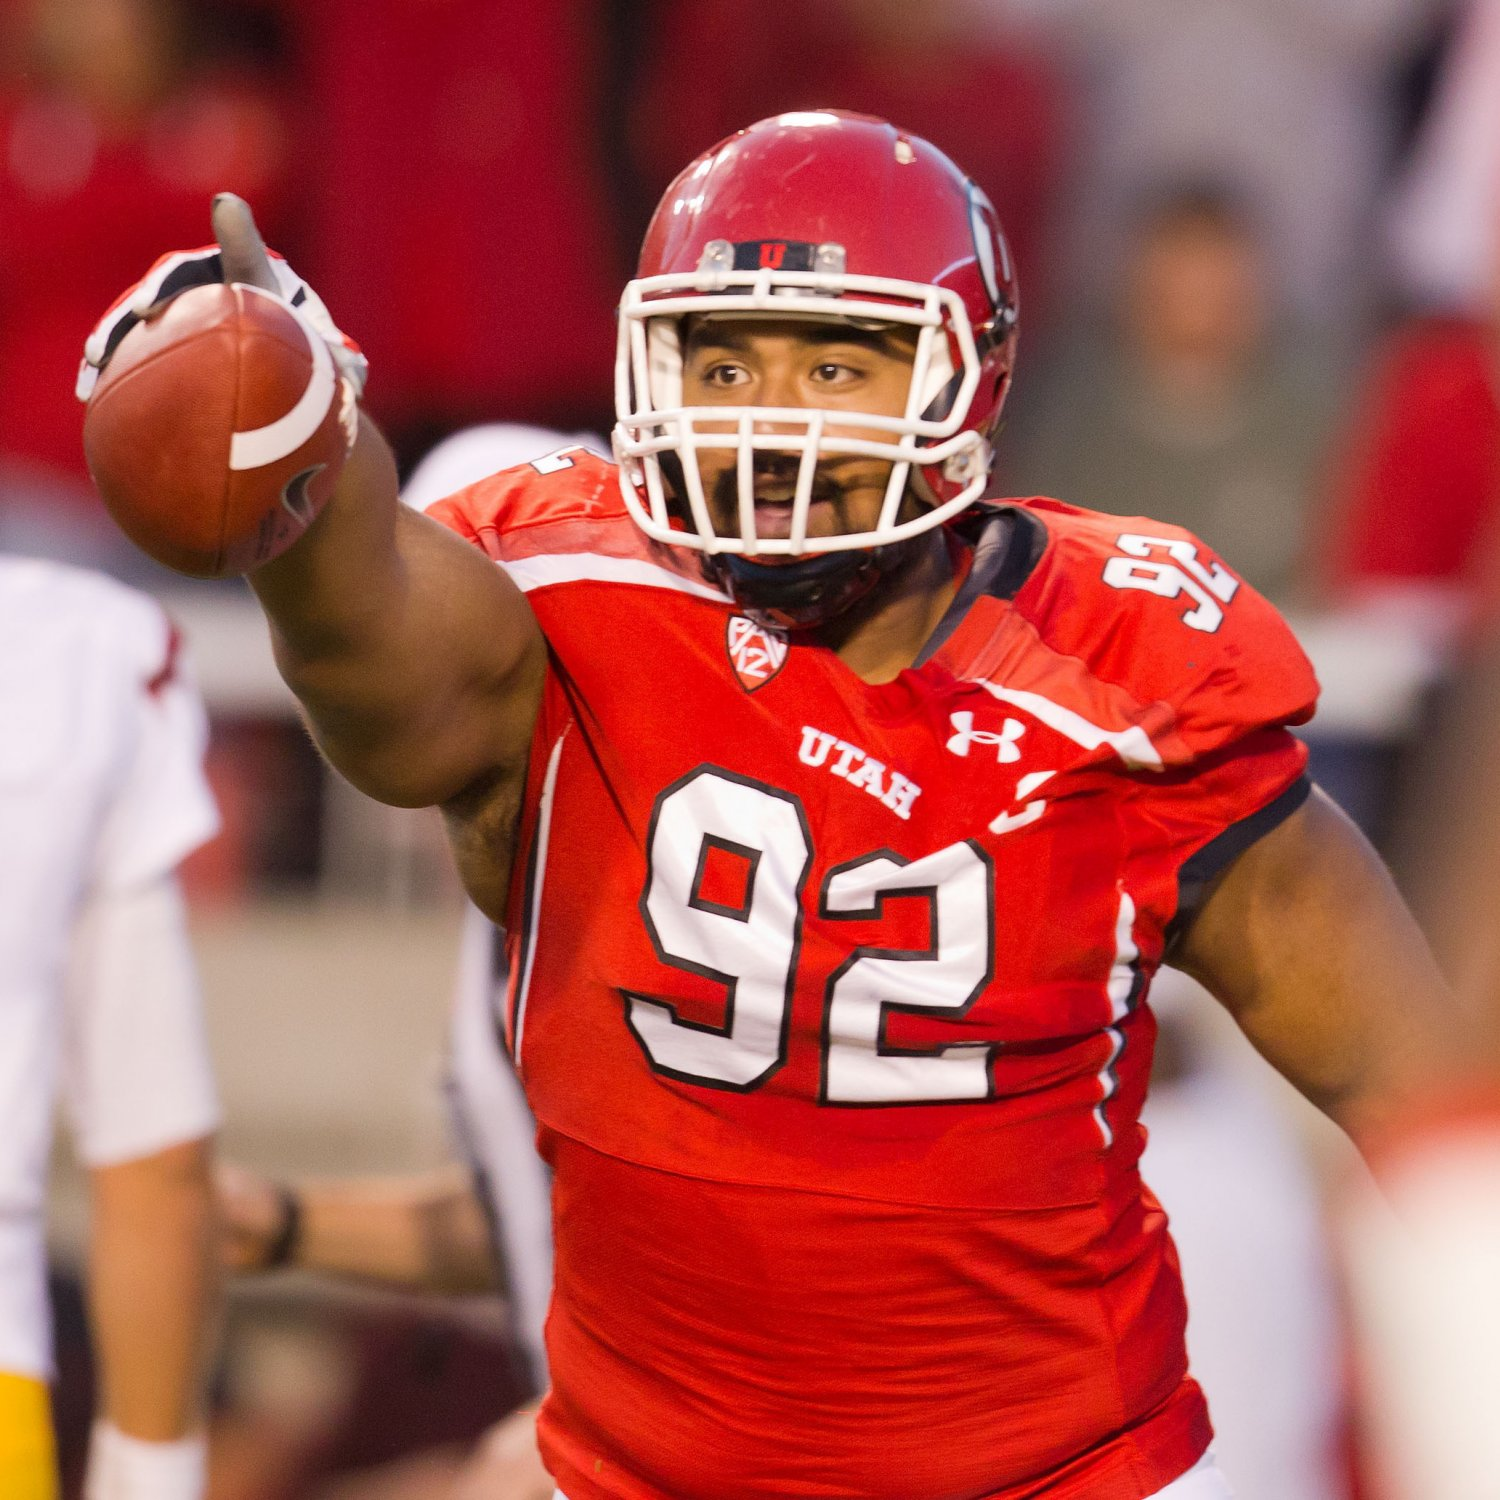 Latest News Updates: Oakland Raiders 2013 Draft Updates: Latest News, Trade